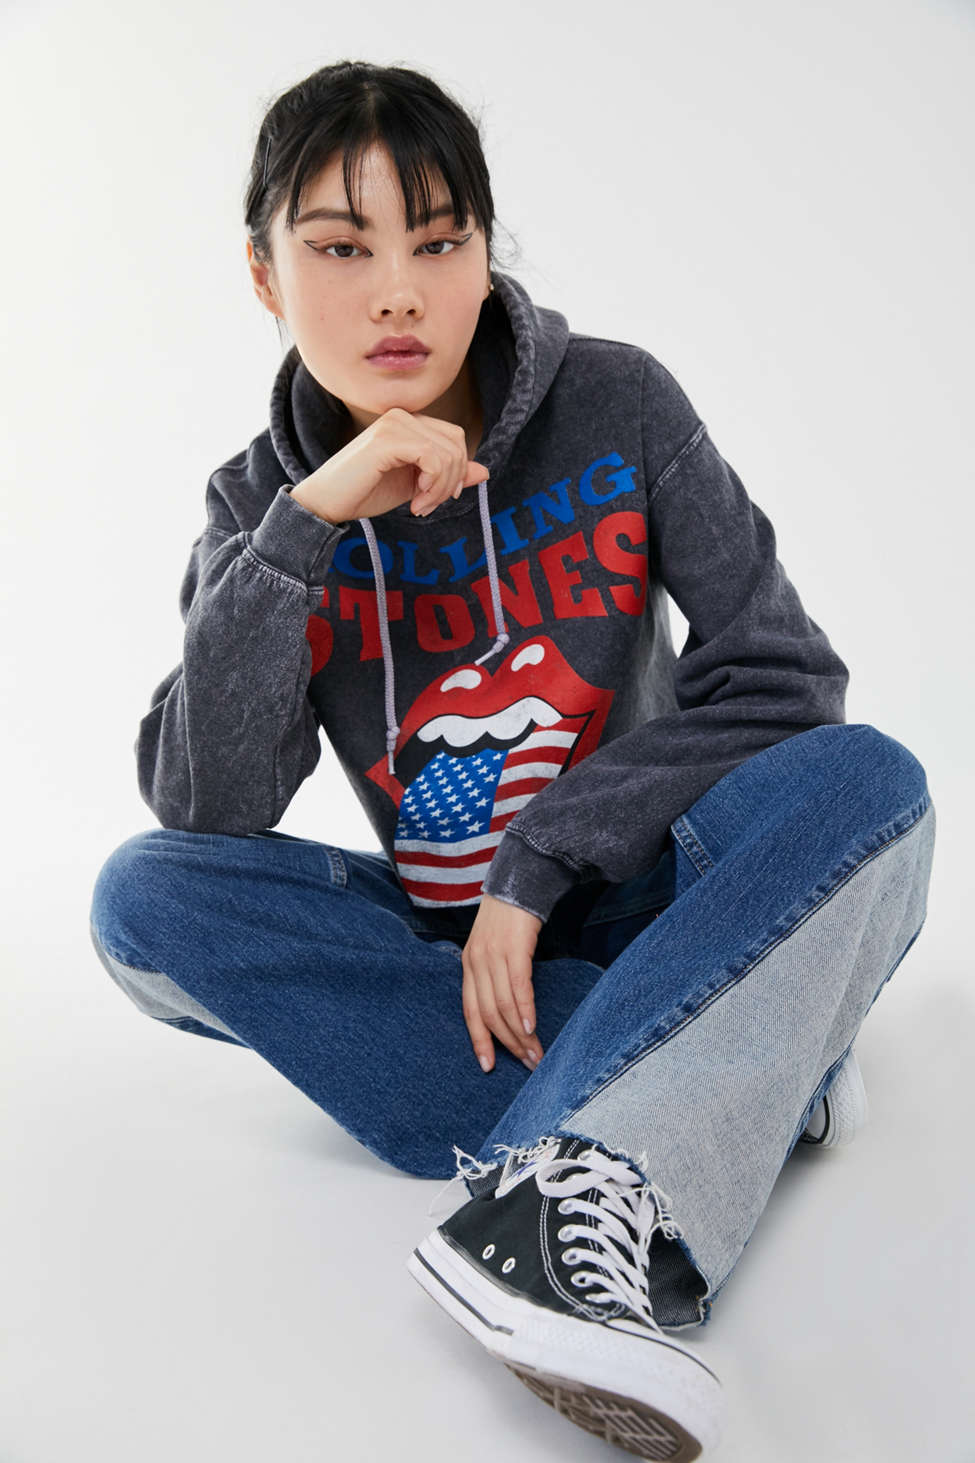 The Rolling Stones 1994 Tour Cutoff Hoodie Sweatshirt by Urban Outfitters